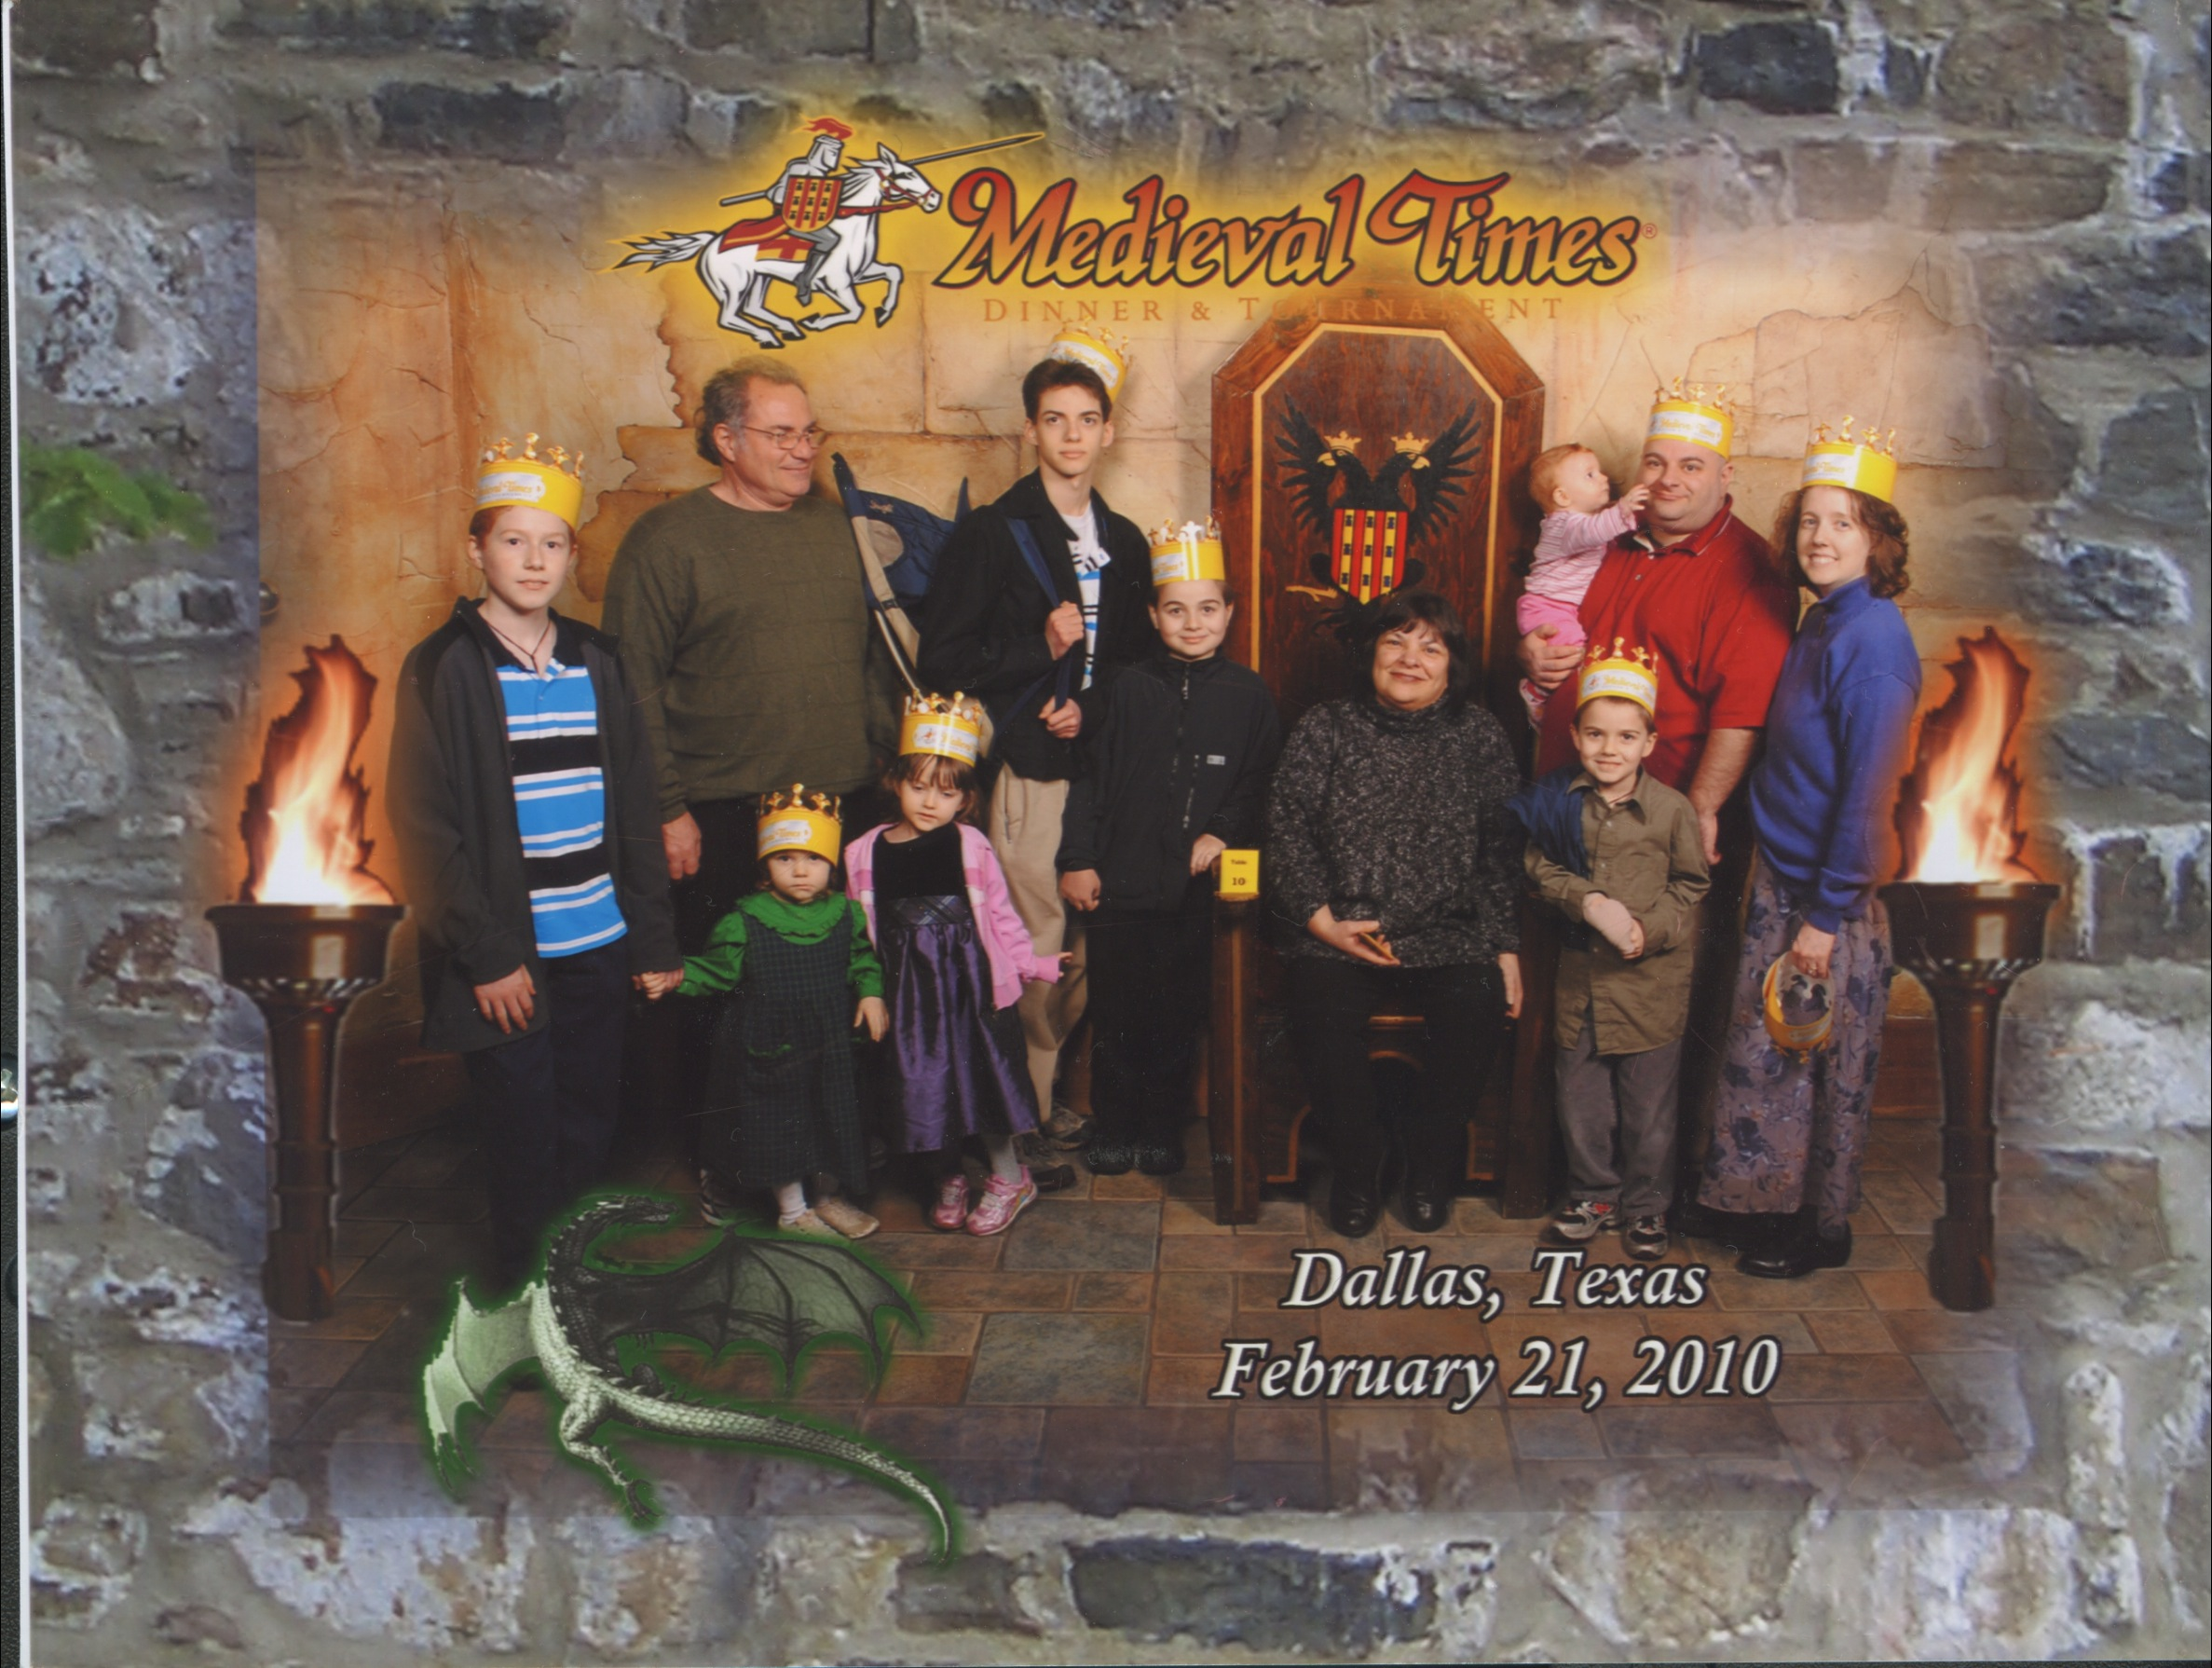 Medieval Times Throne Room. Michael, Grandfather 'Nunu', Bernie Jacinta, Joseph, Nunzio, Grandmother 'Nana' sitting on a throne, Justin holding Catie, Cross and Jen. Bottom Text: 'Dallas, Texas February 21, 2010'